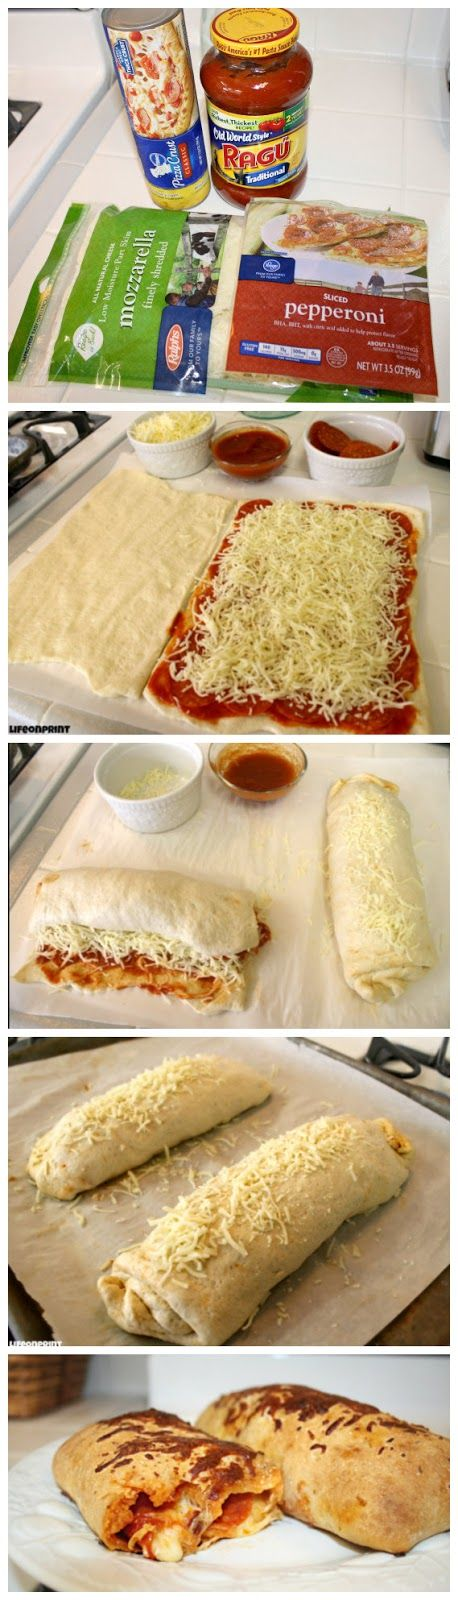 Easy Pizza Roll-Ups - Askmefood